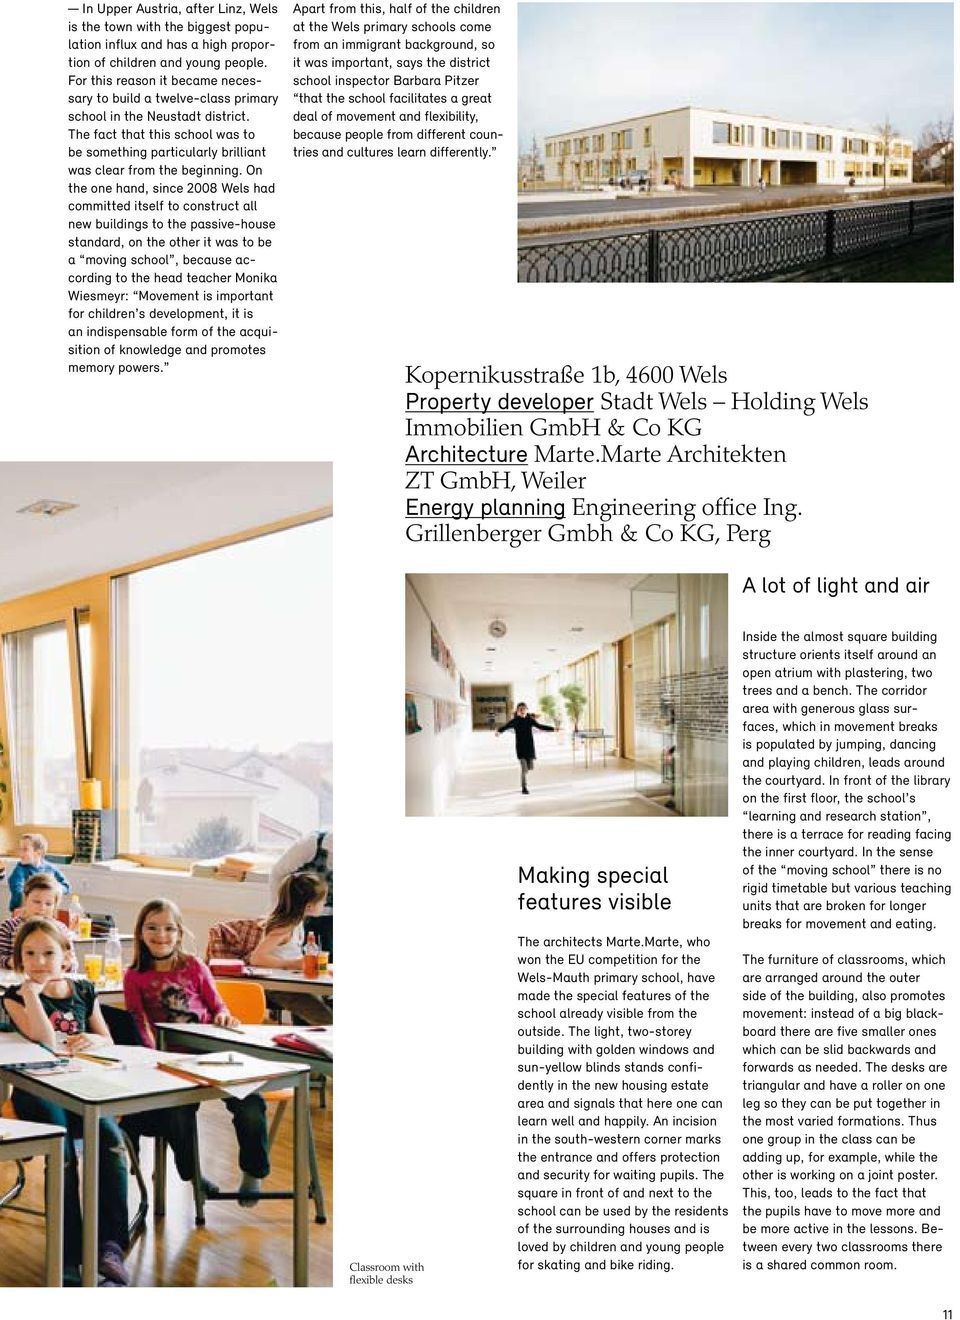 On the one hand, since 2008 Wels had committed itself to construct all new buildings to the passive-house standard, on the other it was to be a moving school, because according to the head teacher